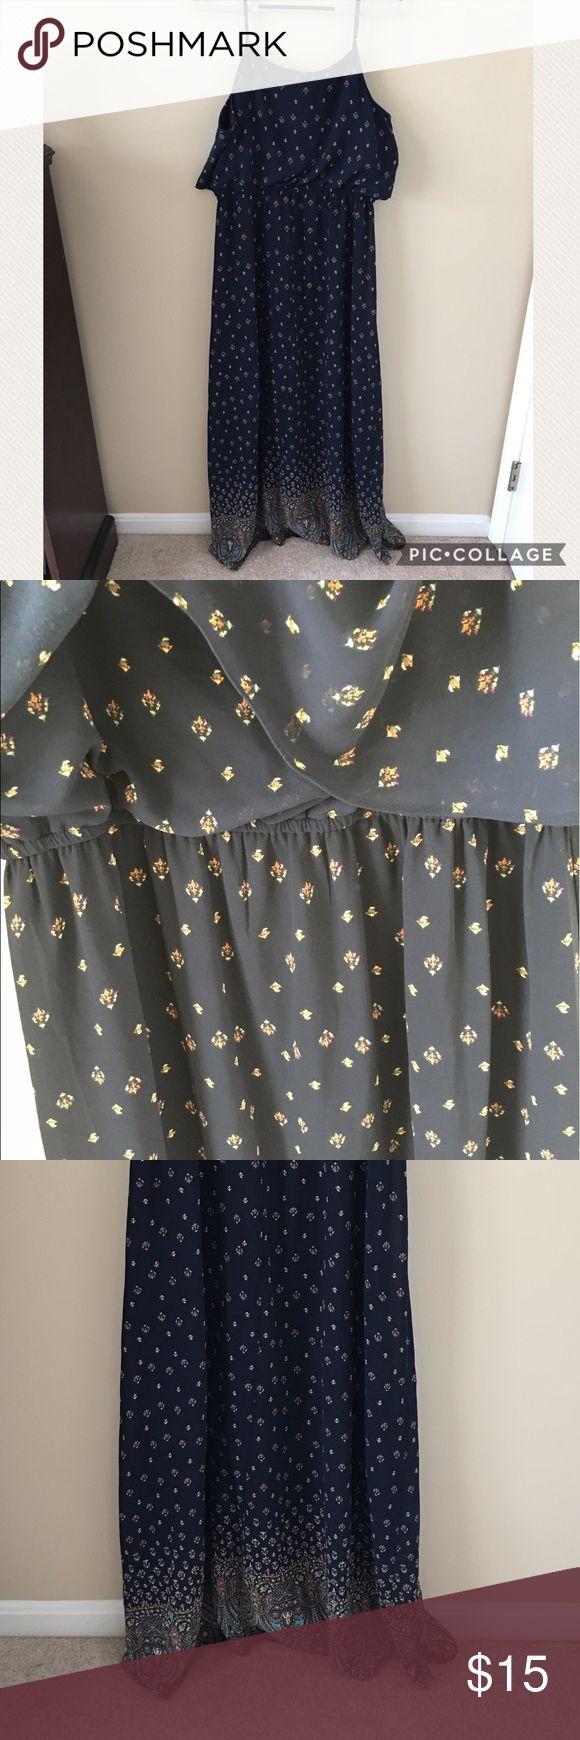 Target Maxi Dress! Size XL target maxi dress, blue with gorgeous decorative detail. It is clinched at the waist, but stretchy! Has front overlay. The color is navy blue. Like new condition! Target Dresses Maxi